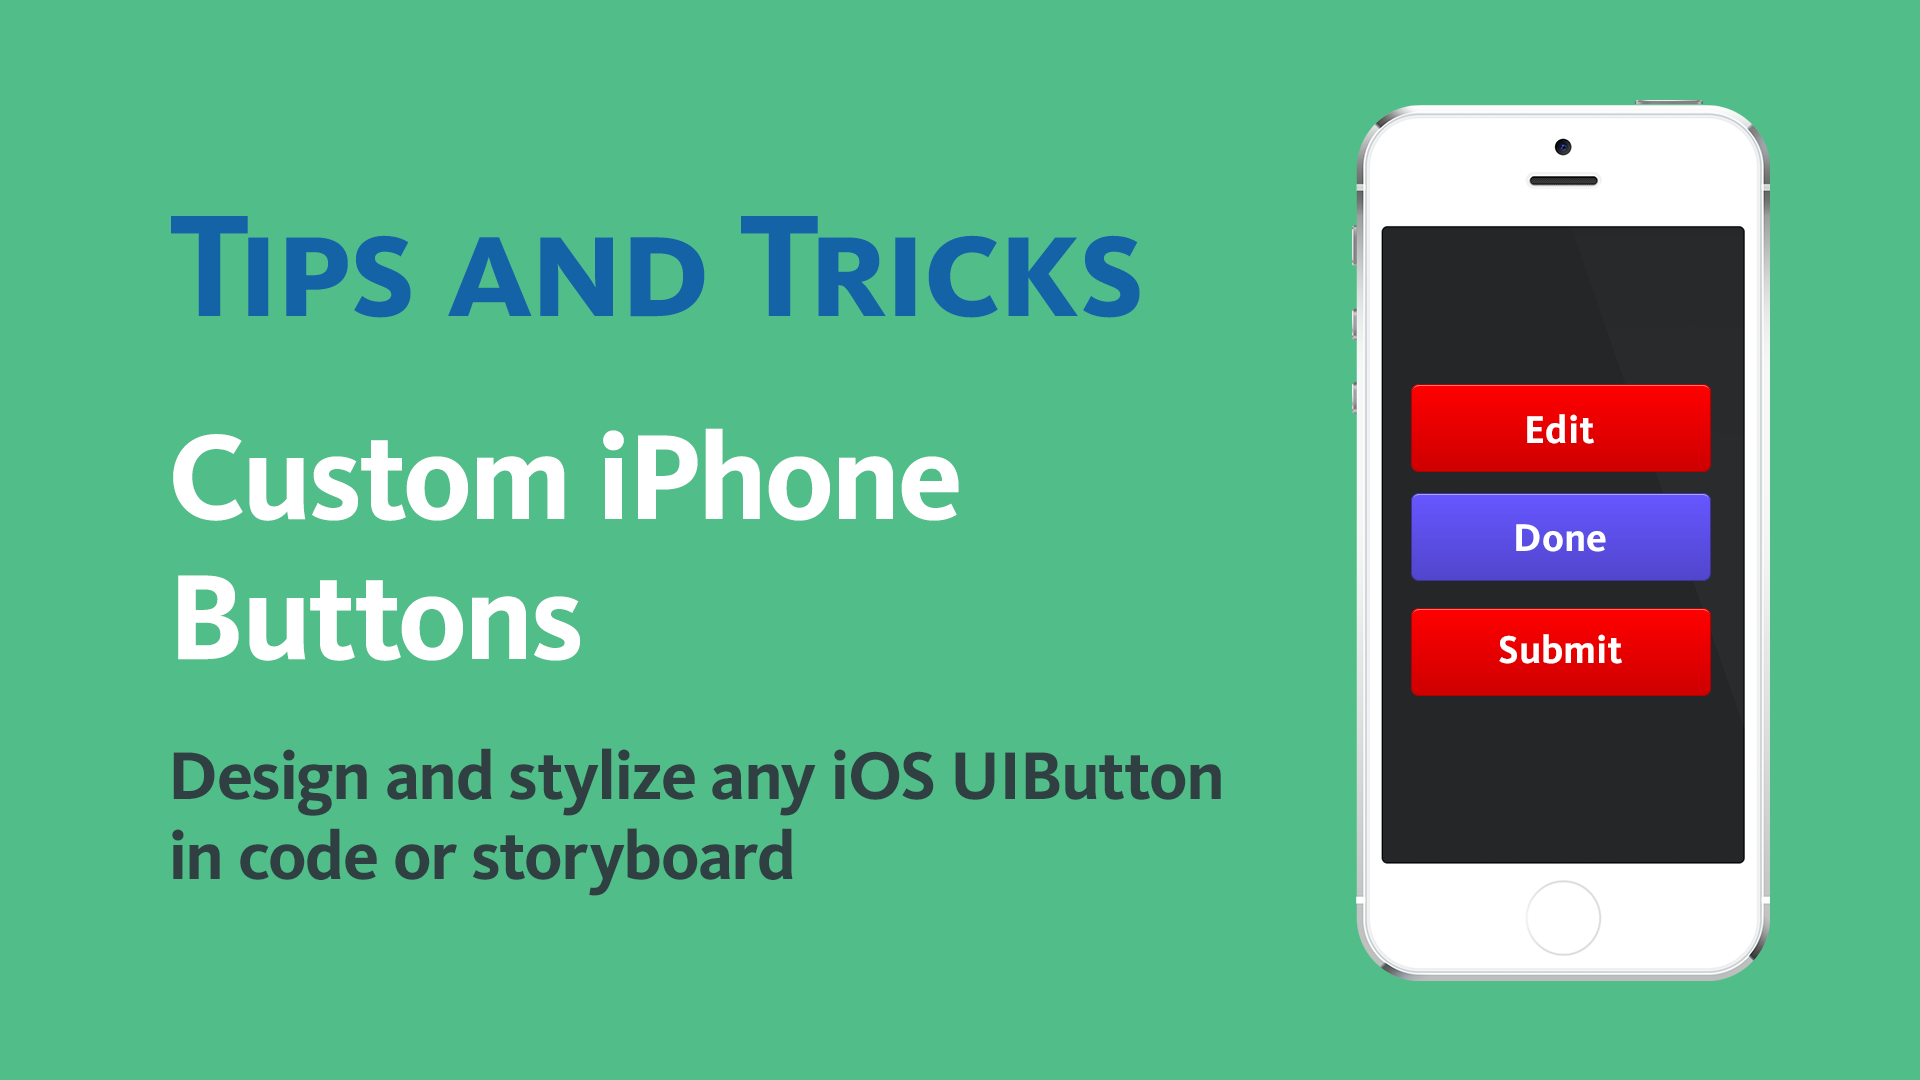 Subscribe and you will get FREE access to a  5 video course  on custom buttons for iOS.